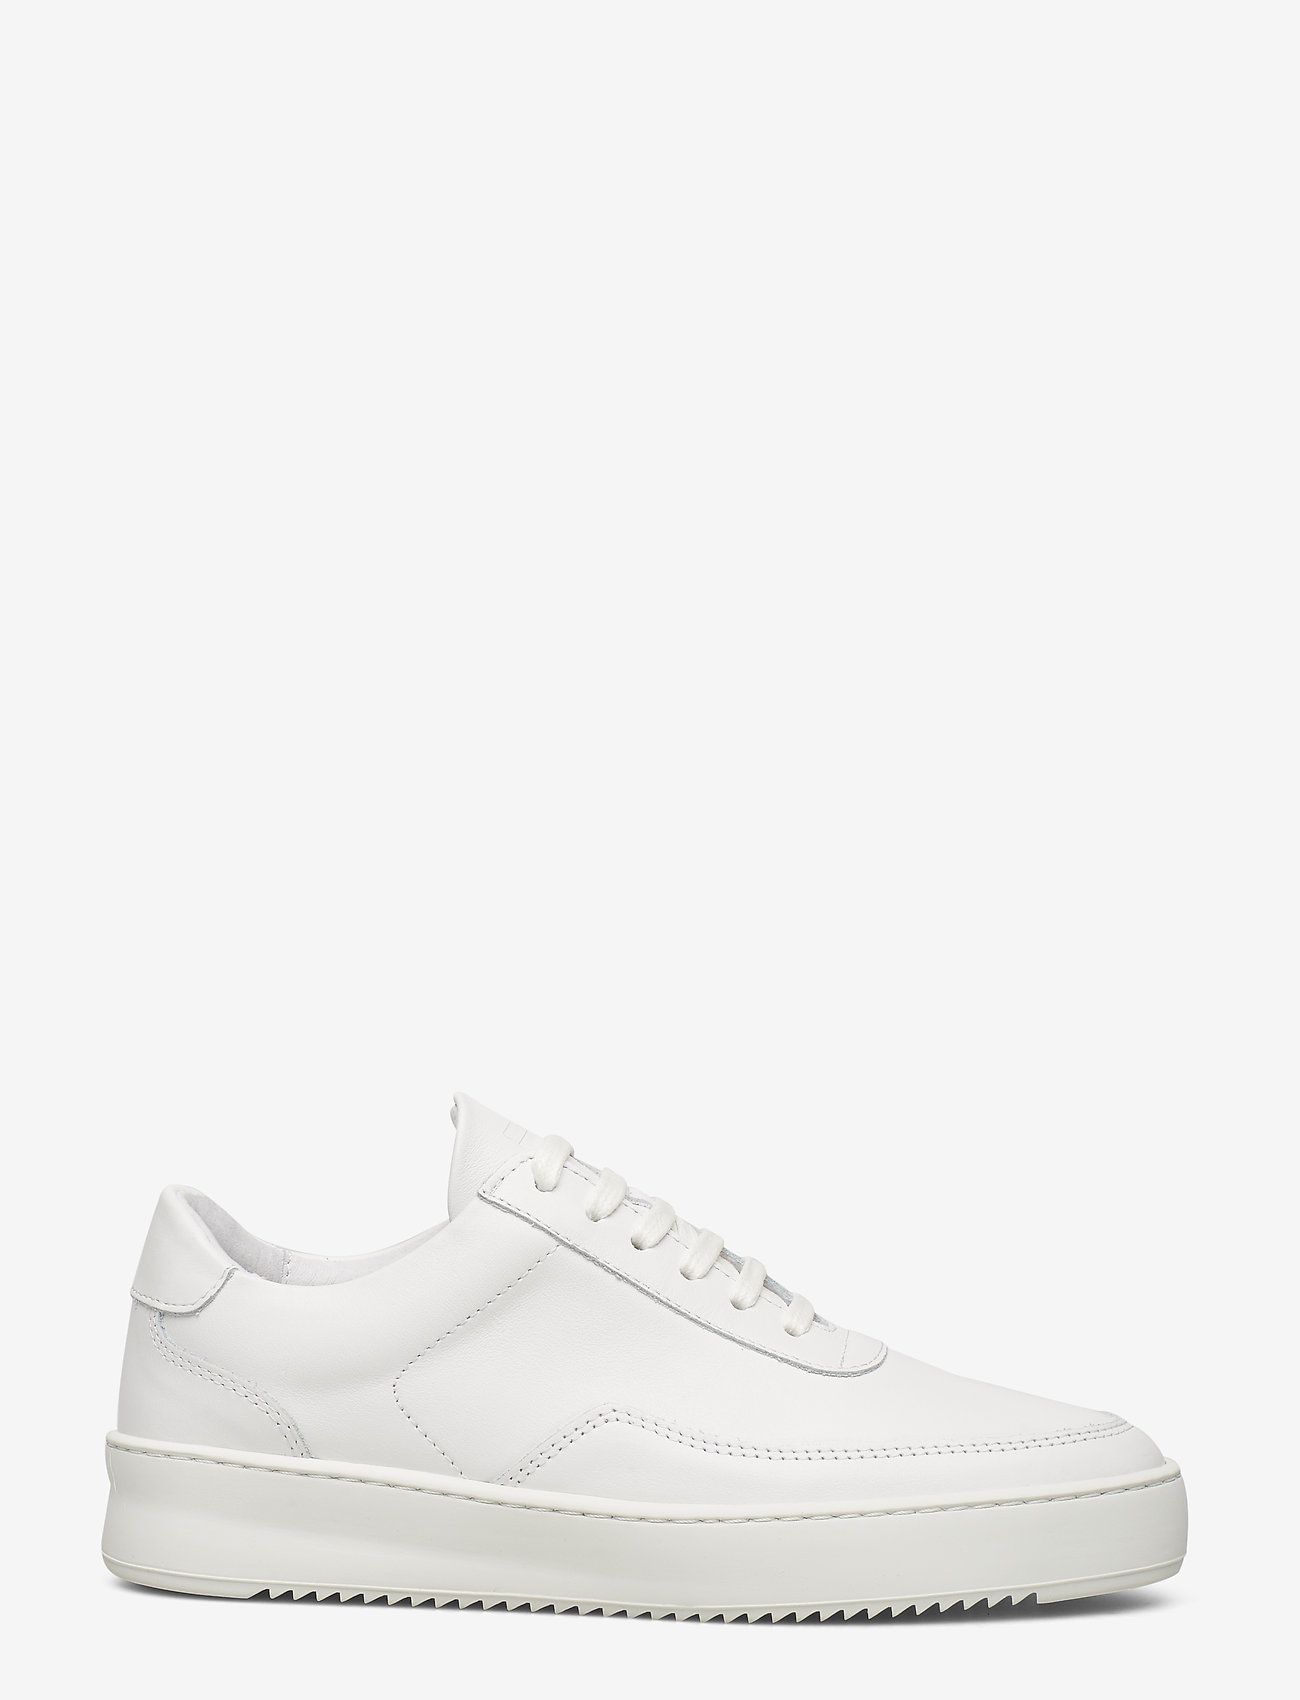 Low Mondo Ripple Nardo (White) - Filling Pieces GV5GOp